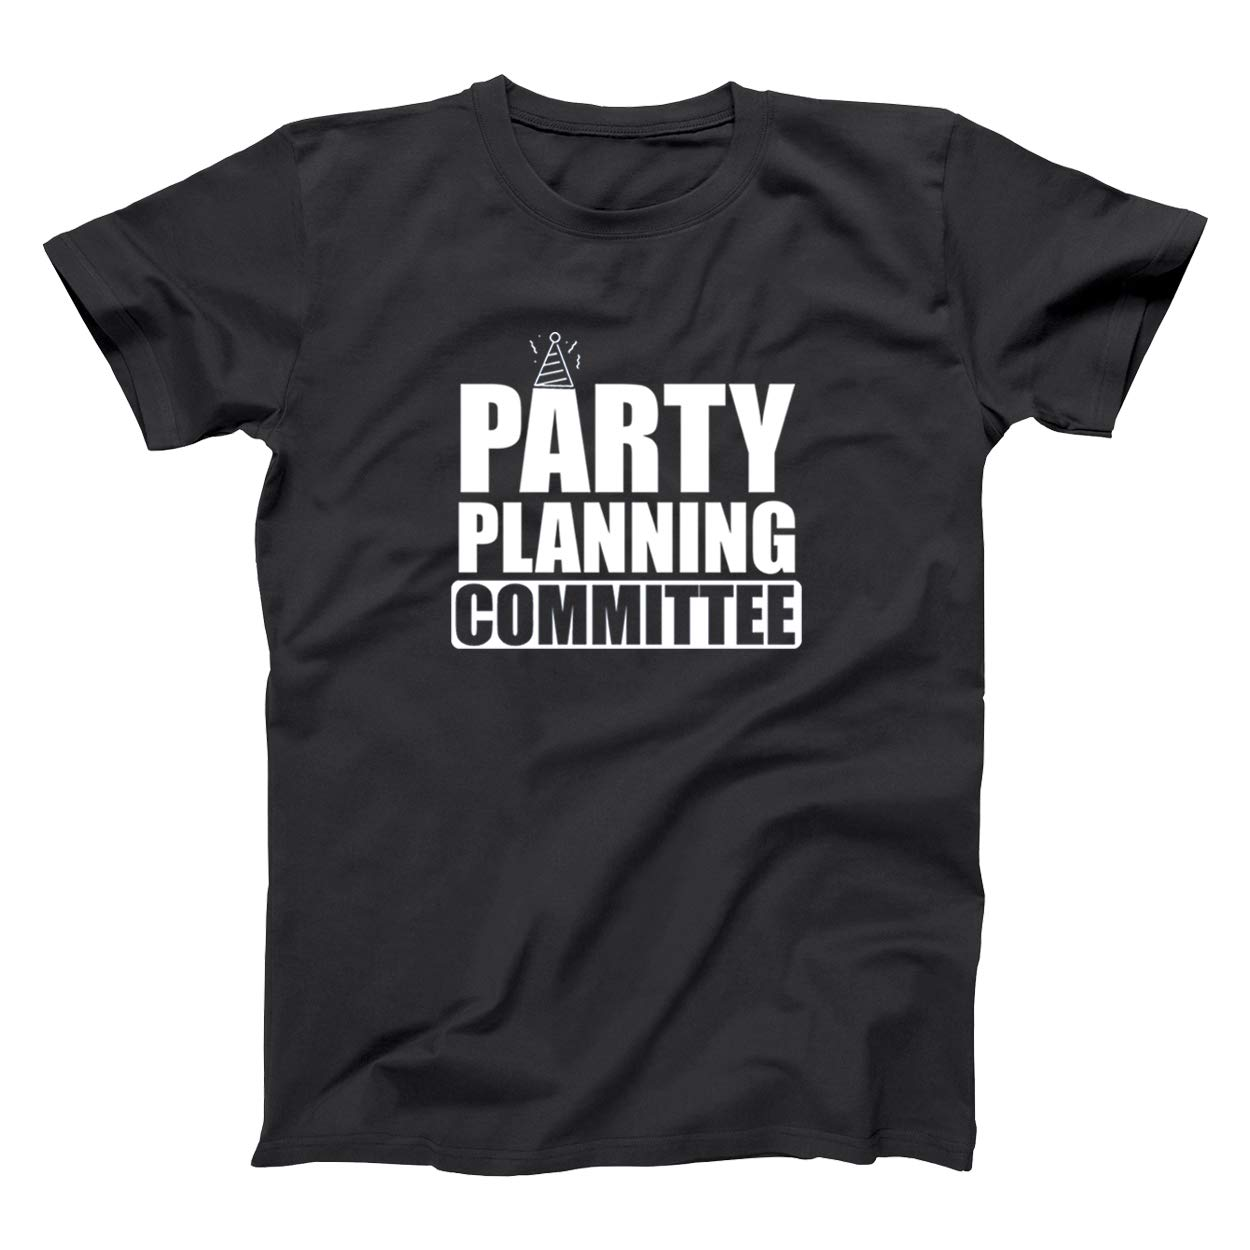 Donkey S Party Planning Commit The Funny Office Show Dunder Mifflin S Shirts